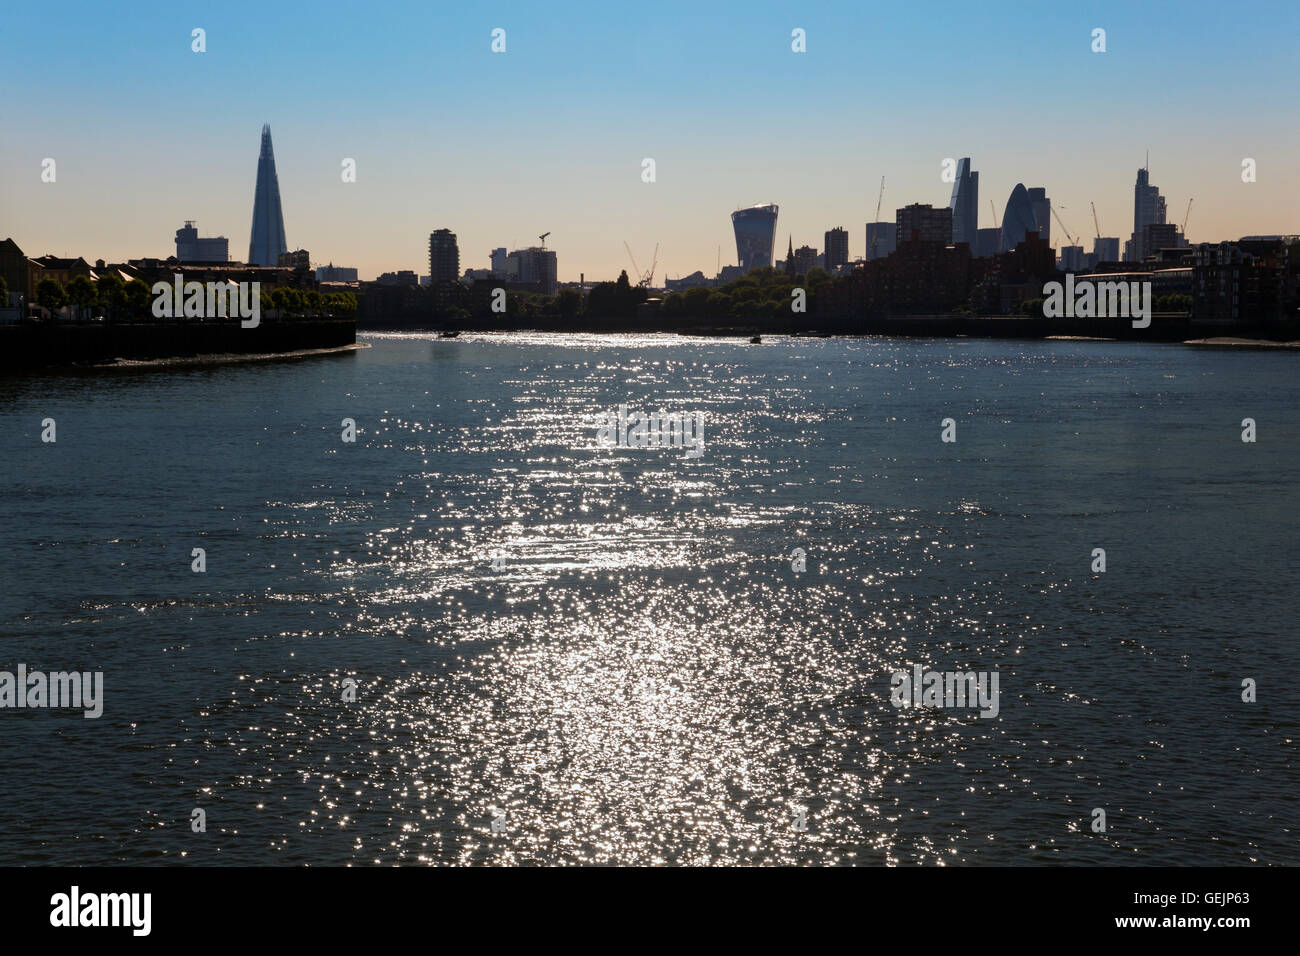 Skyline of London as seen from Canary Wharf - Stock Image